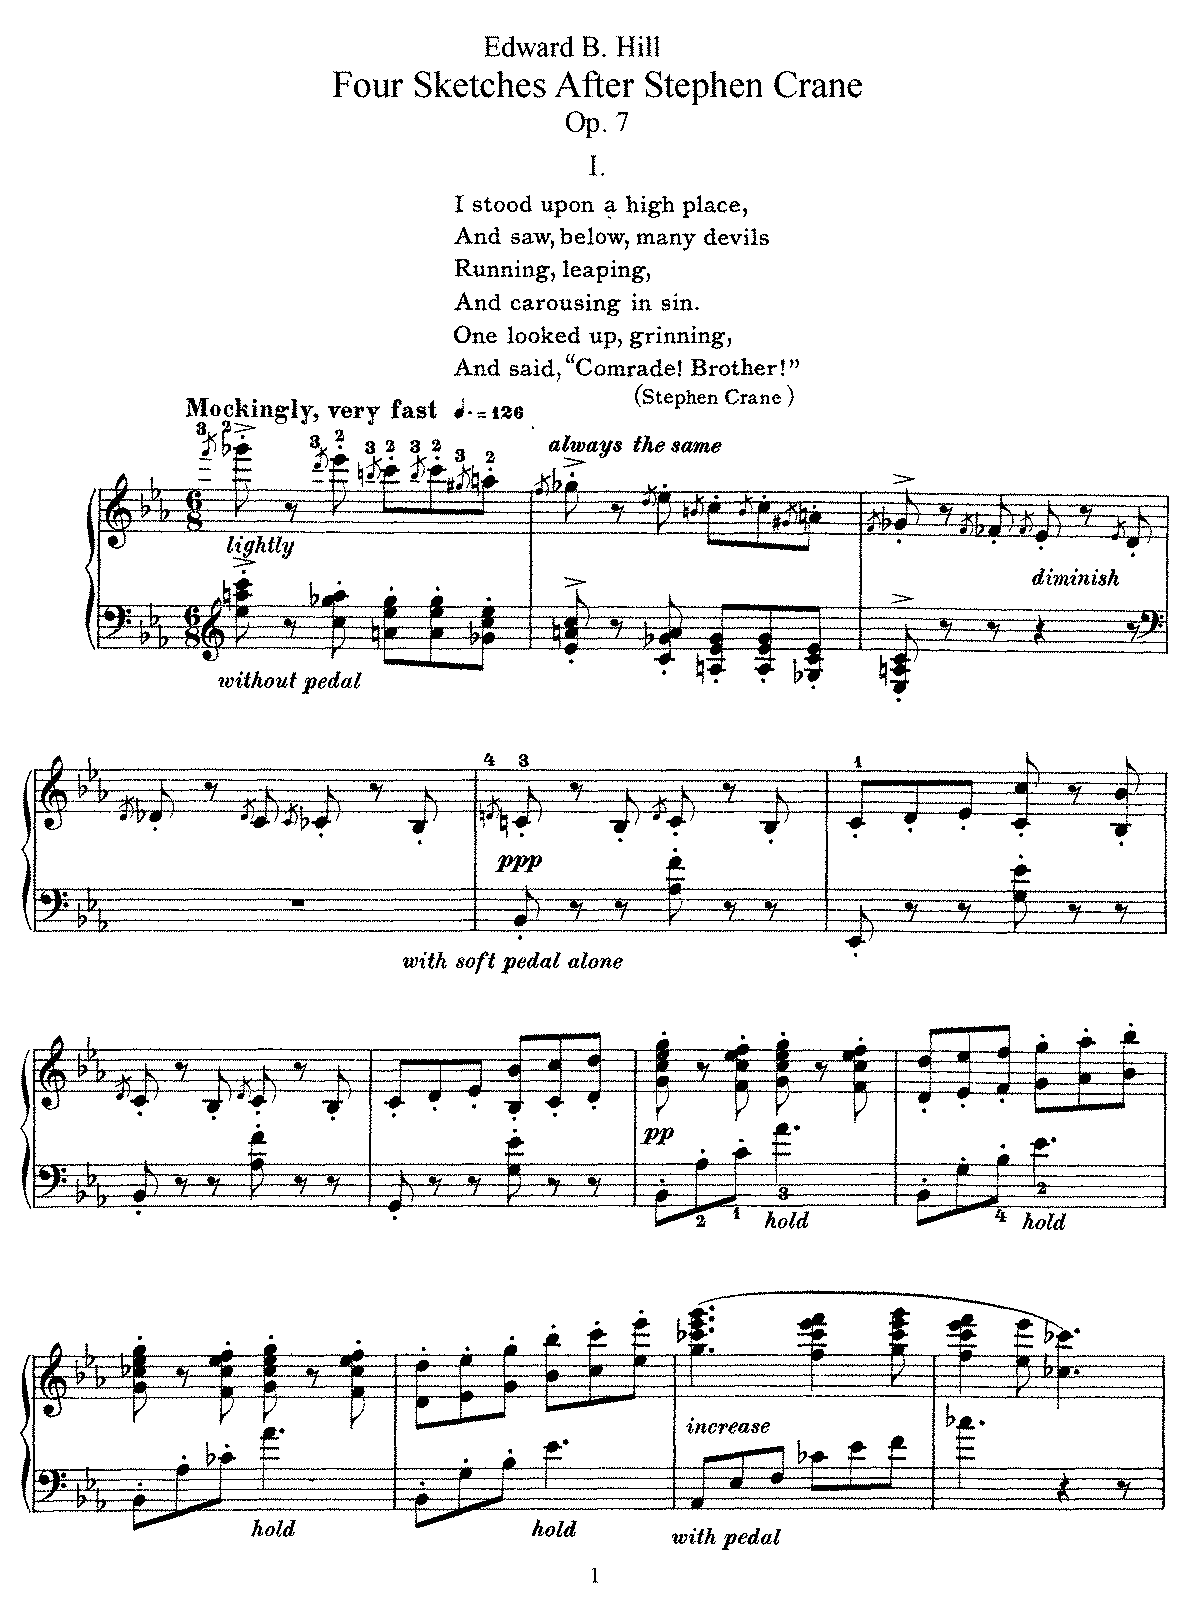 Hill - 4 Sketches After Stephen Crane, Op.7.pdf